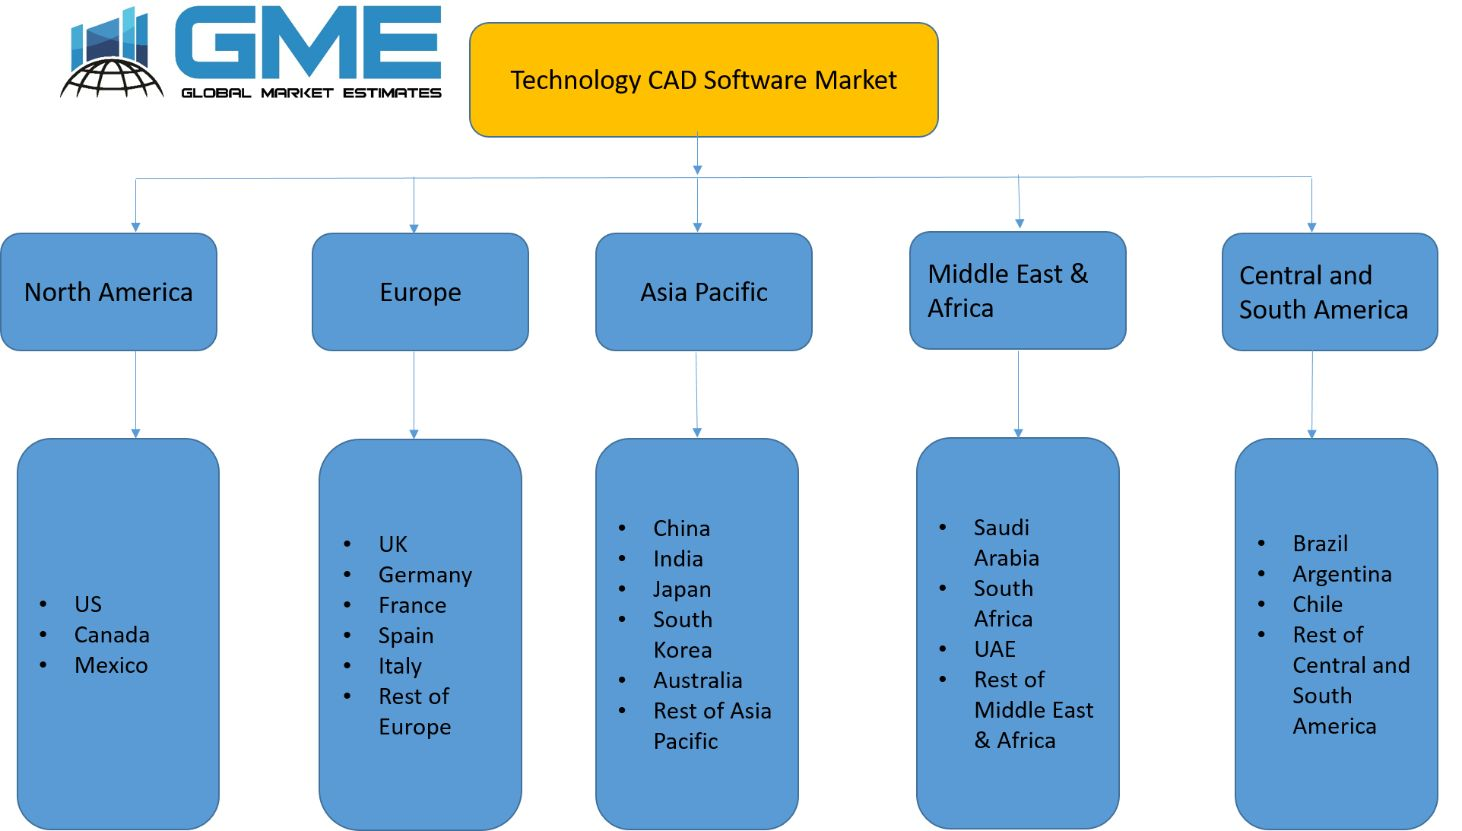 Technology CAD Software Market - Regional Analysis